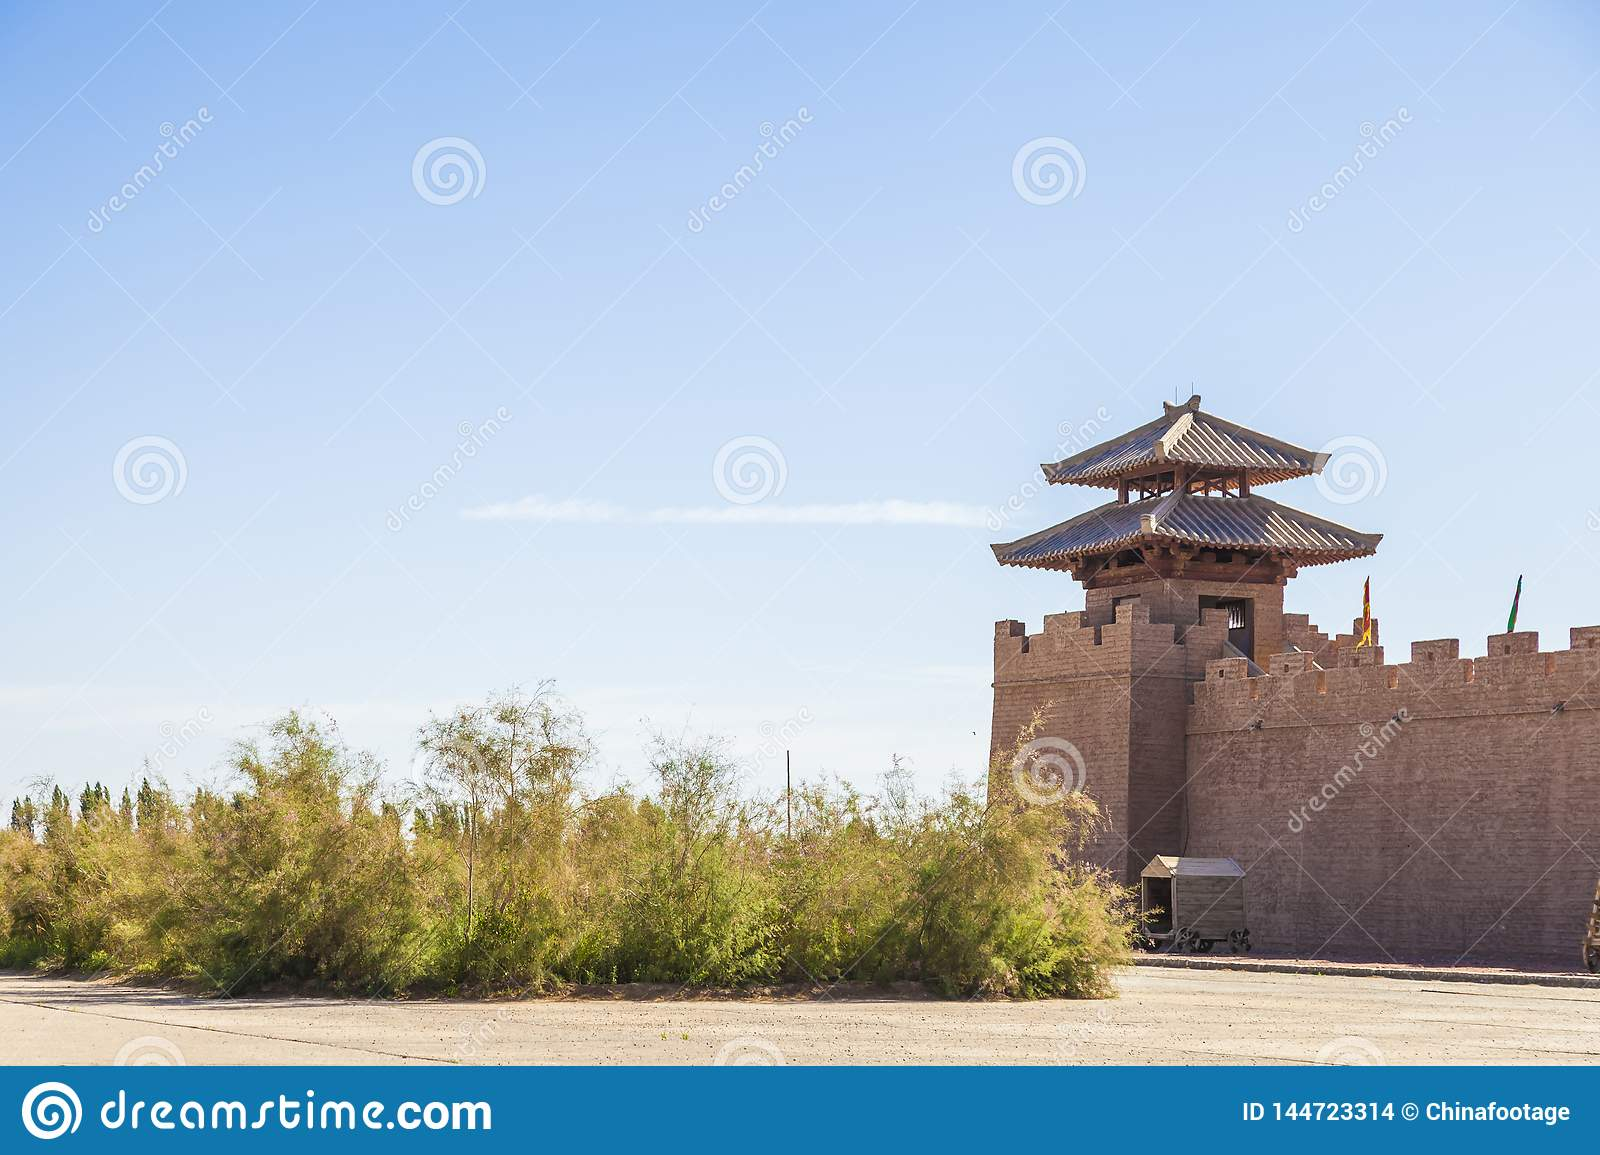 View of fortress wall and watchtower at the historical site of Yang Pass, in Yangguan, Gansu, China